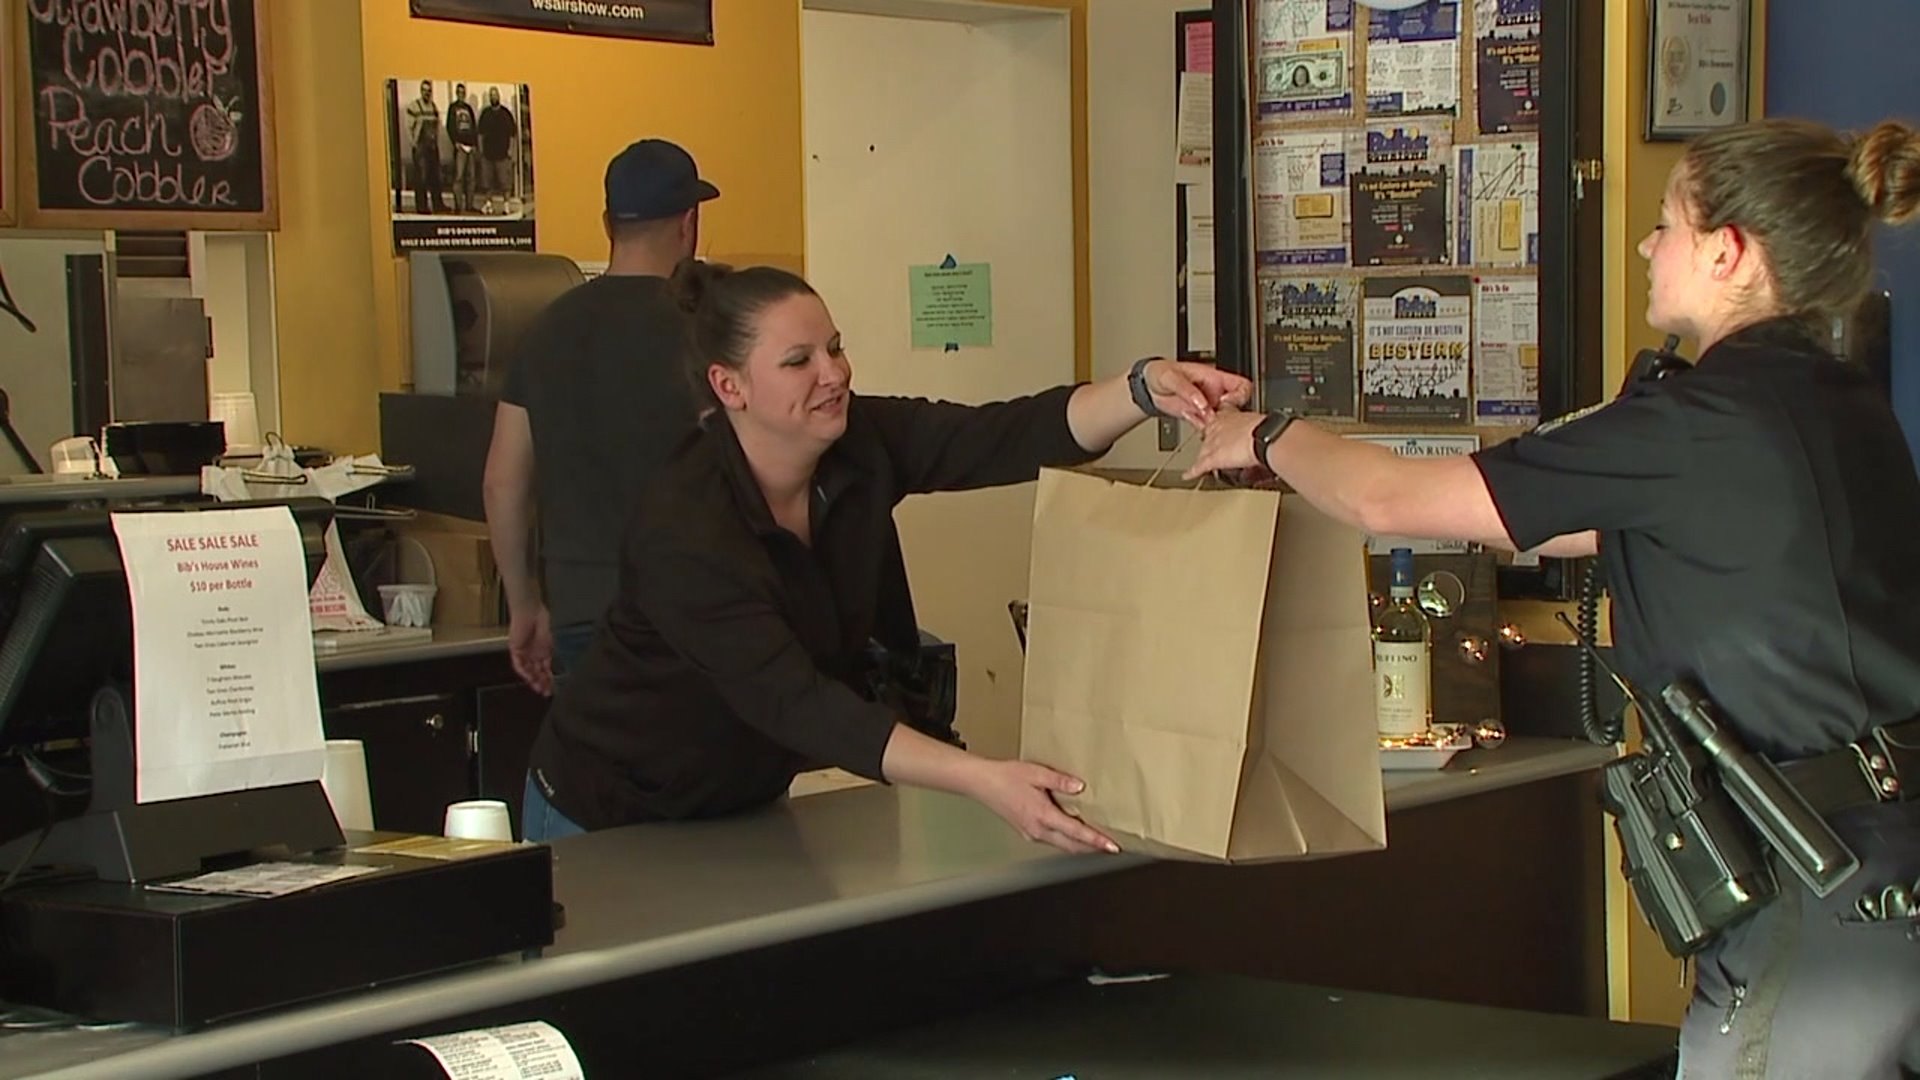 Donation allows Winston-Salem restaurant to provide 300 meals for officers